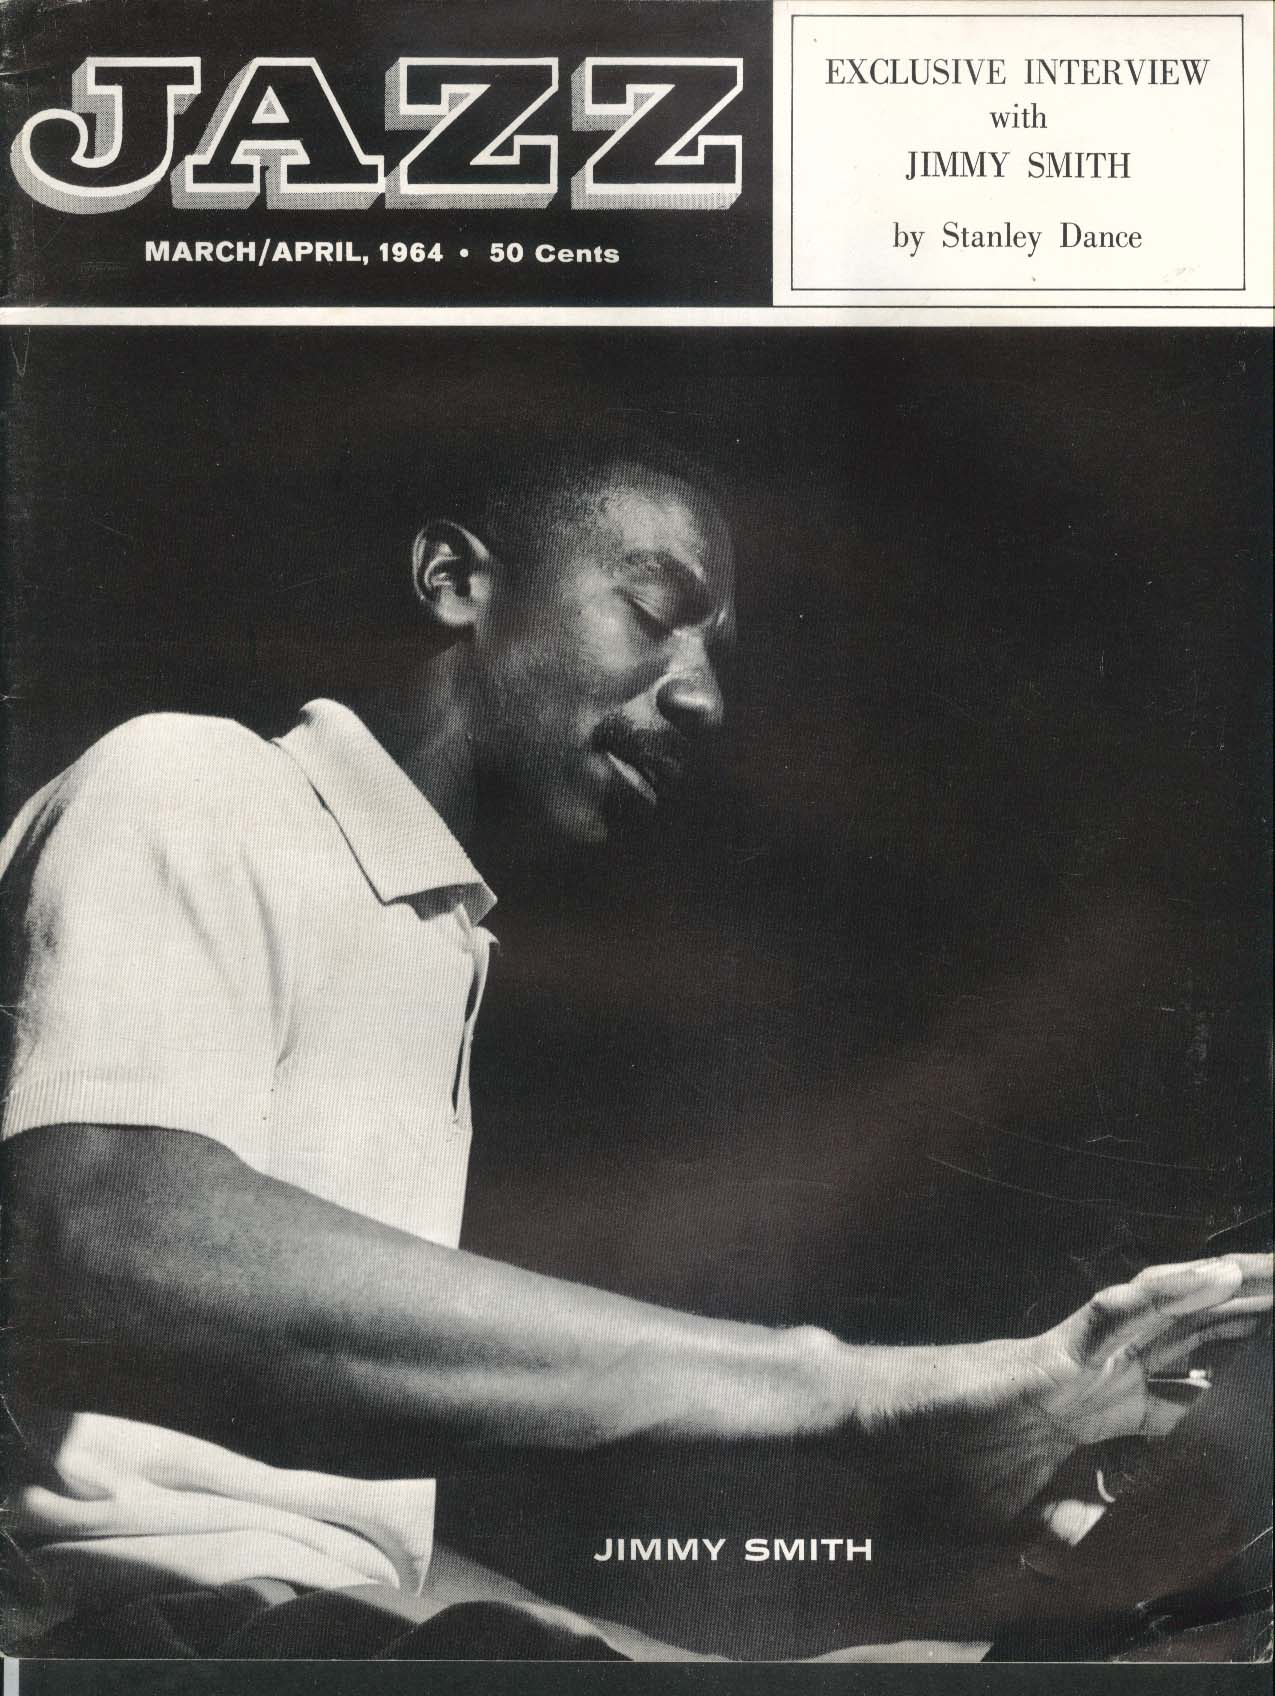 JAZZ Jimmy Smith Woody Herman 3-4 1964